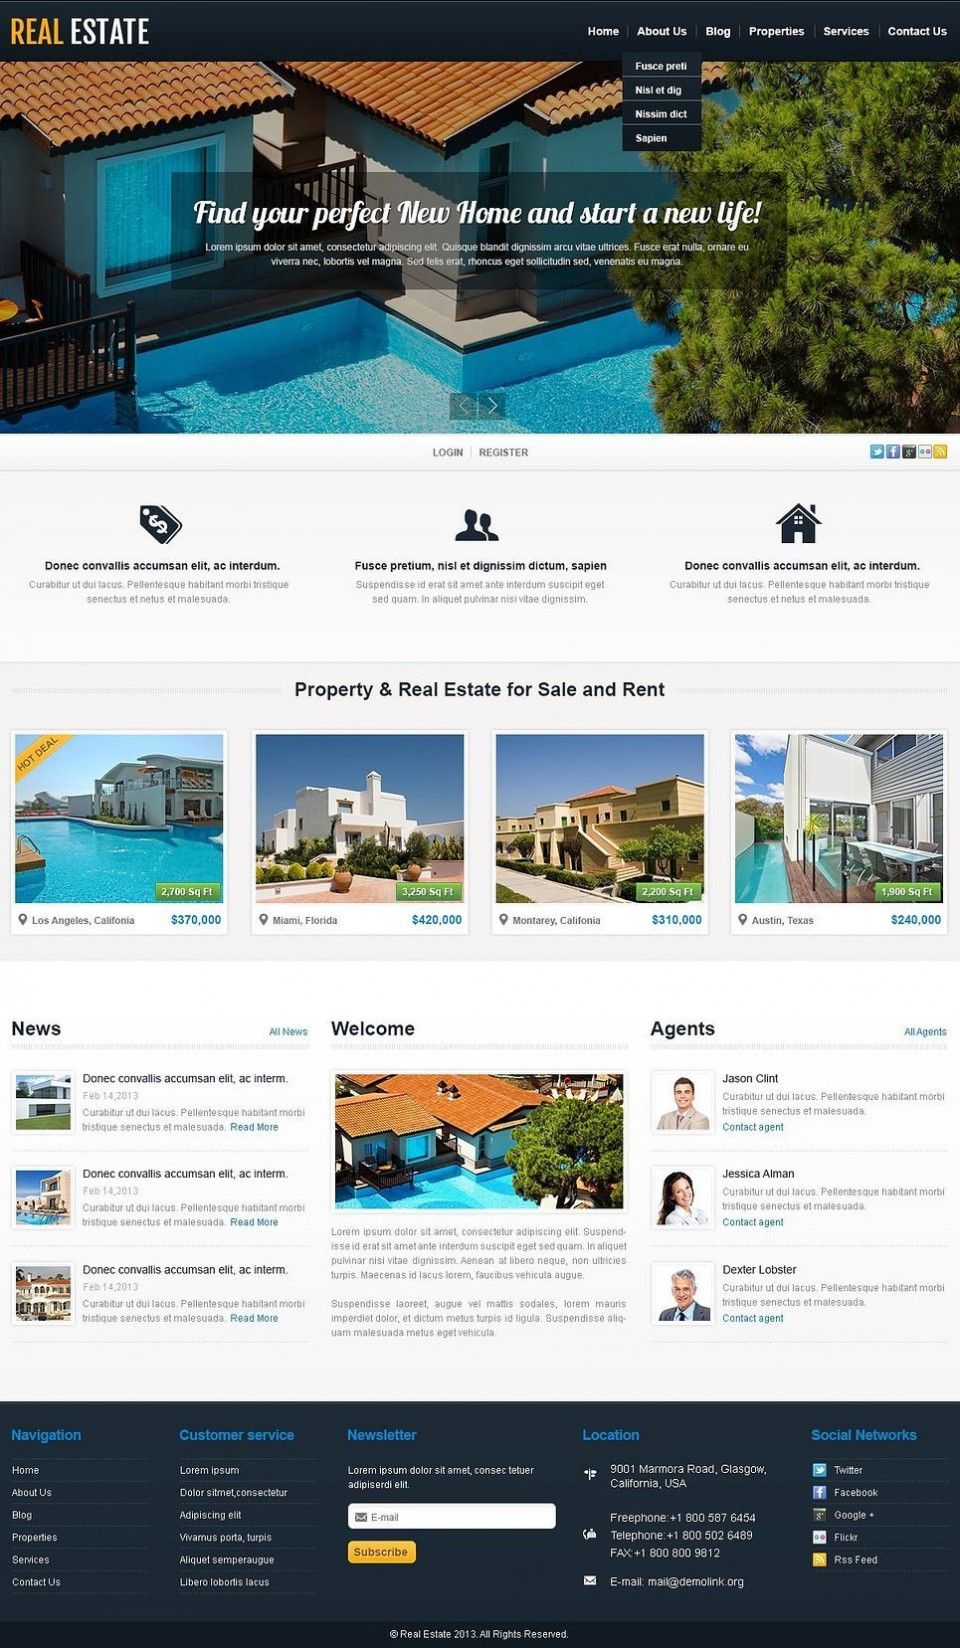 000 Exceptional Real Estate Template Wordpres High Resolution  Homepres - Theme Free Download Realtyspace960